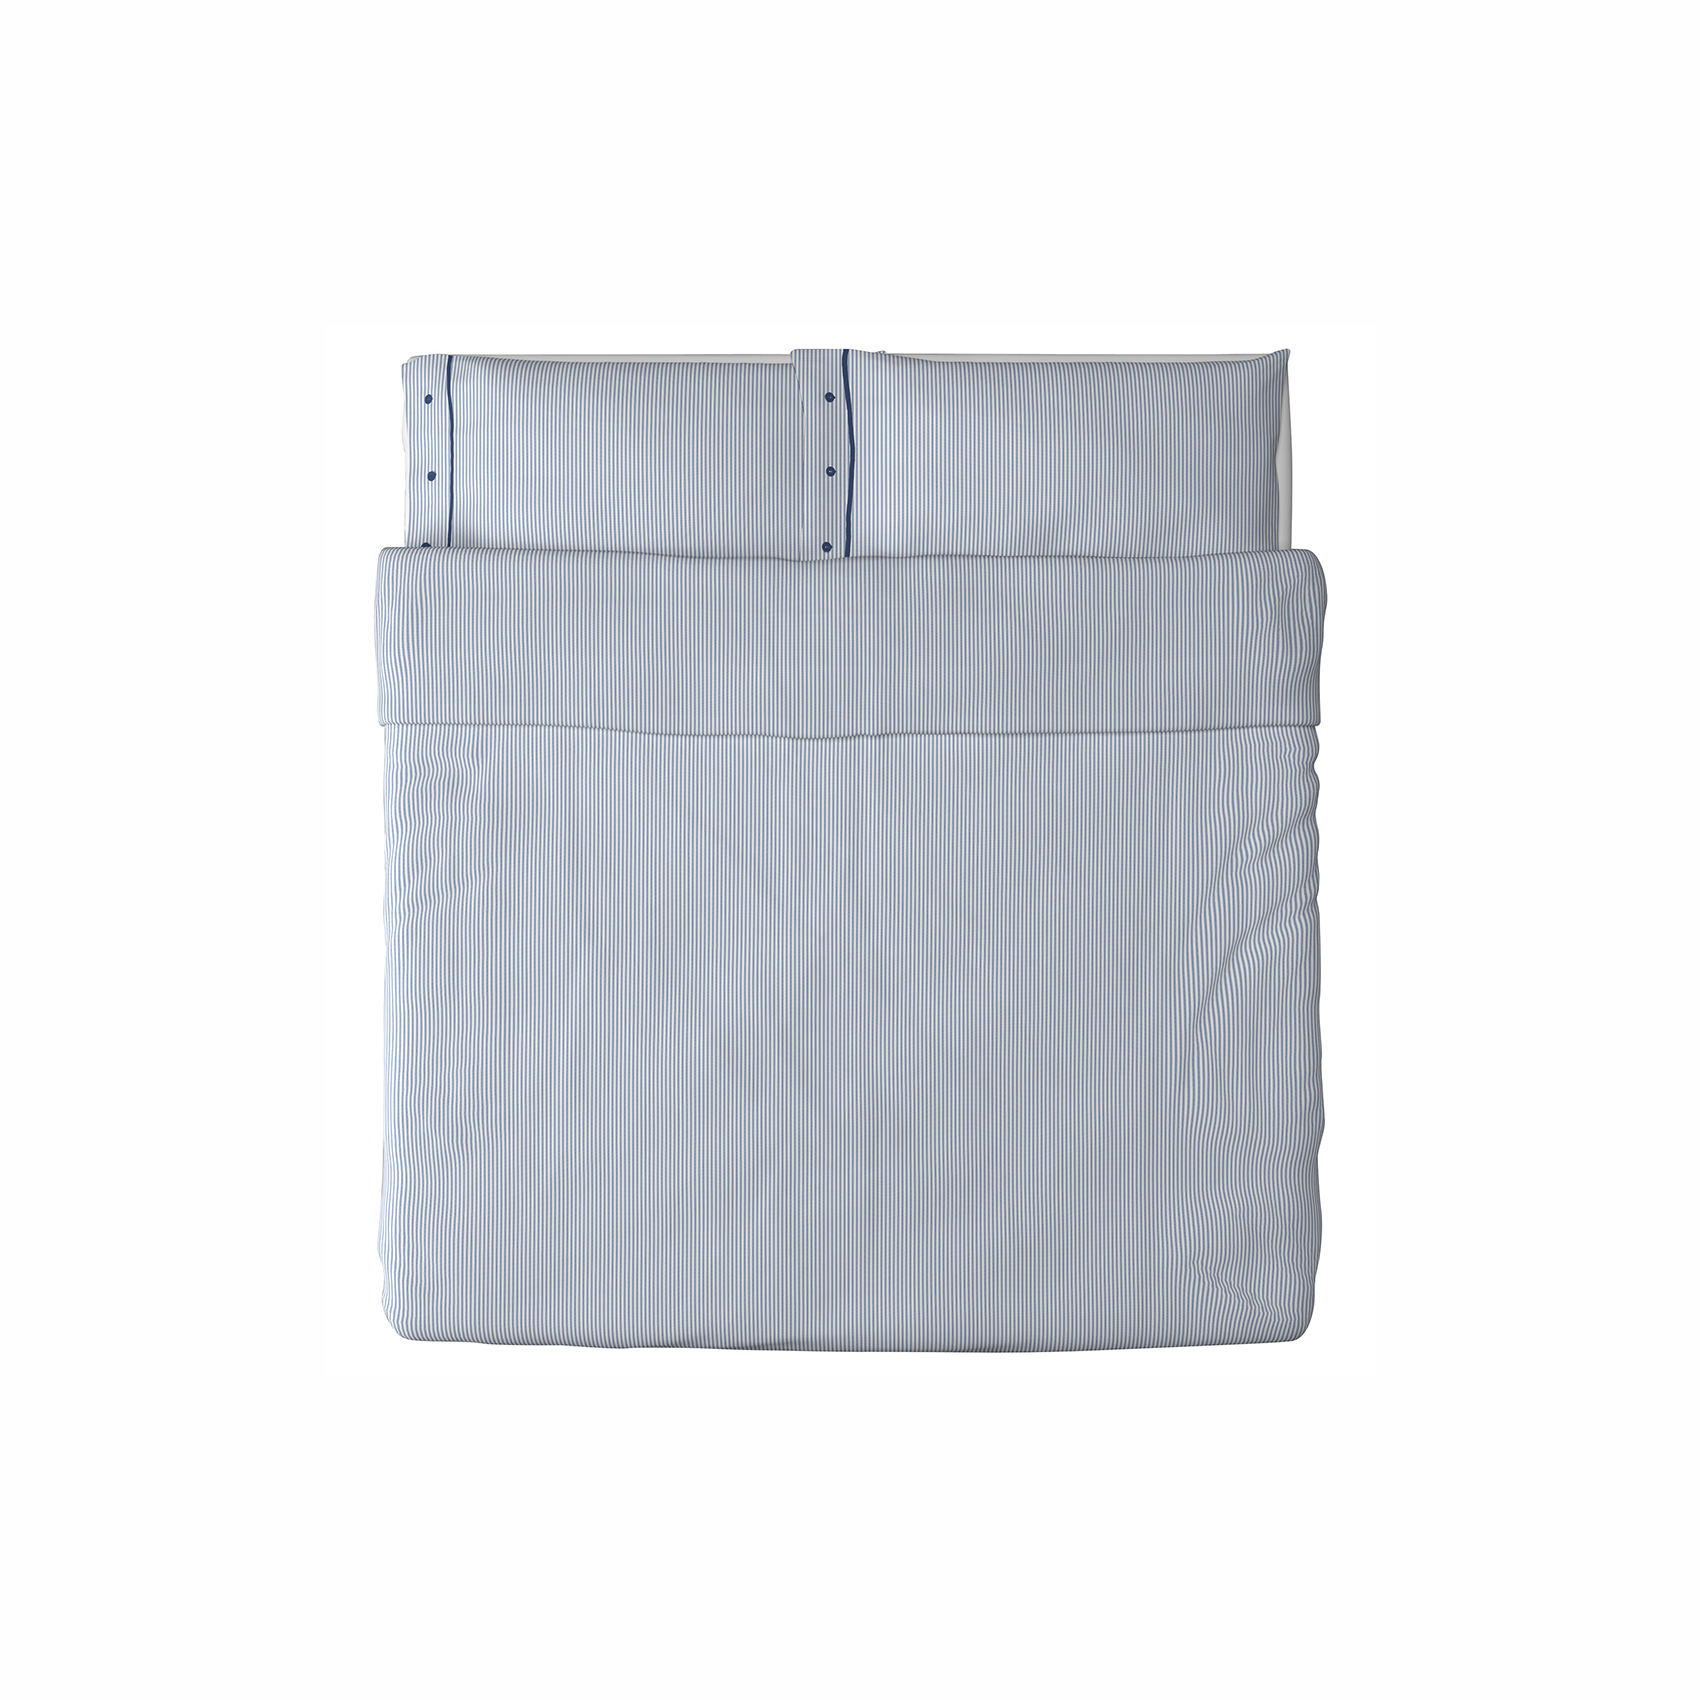 Nyponros Duvet Cover and Pillowcases